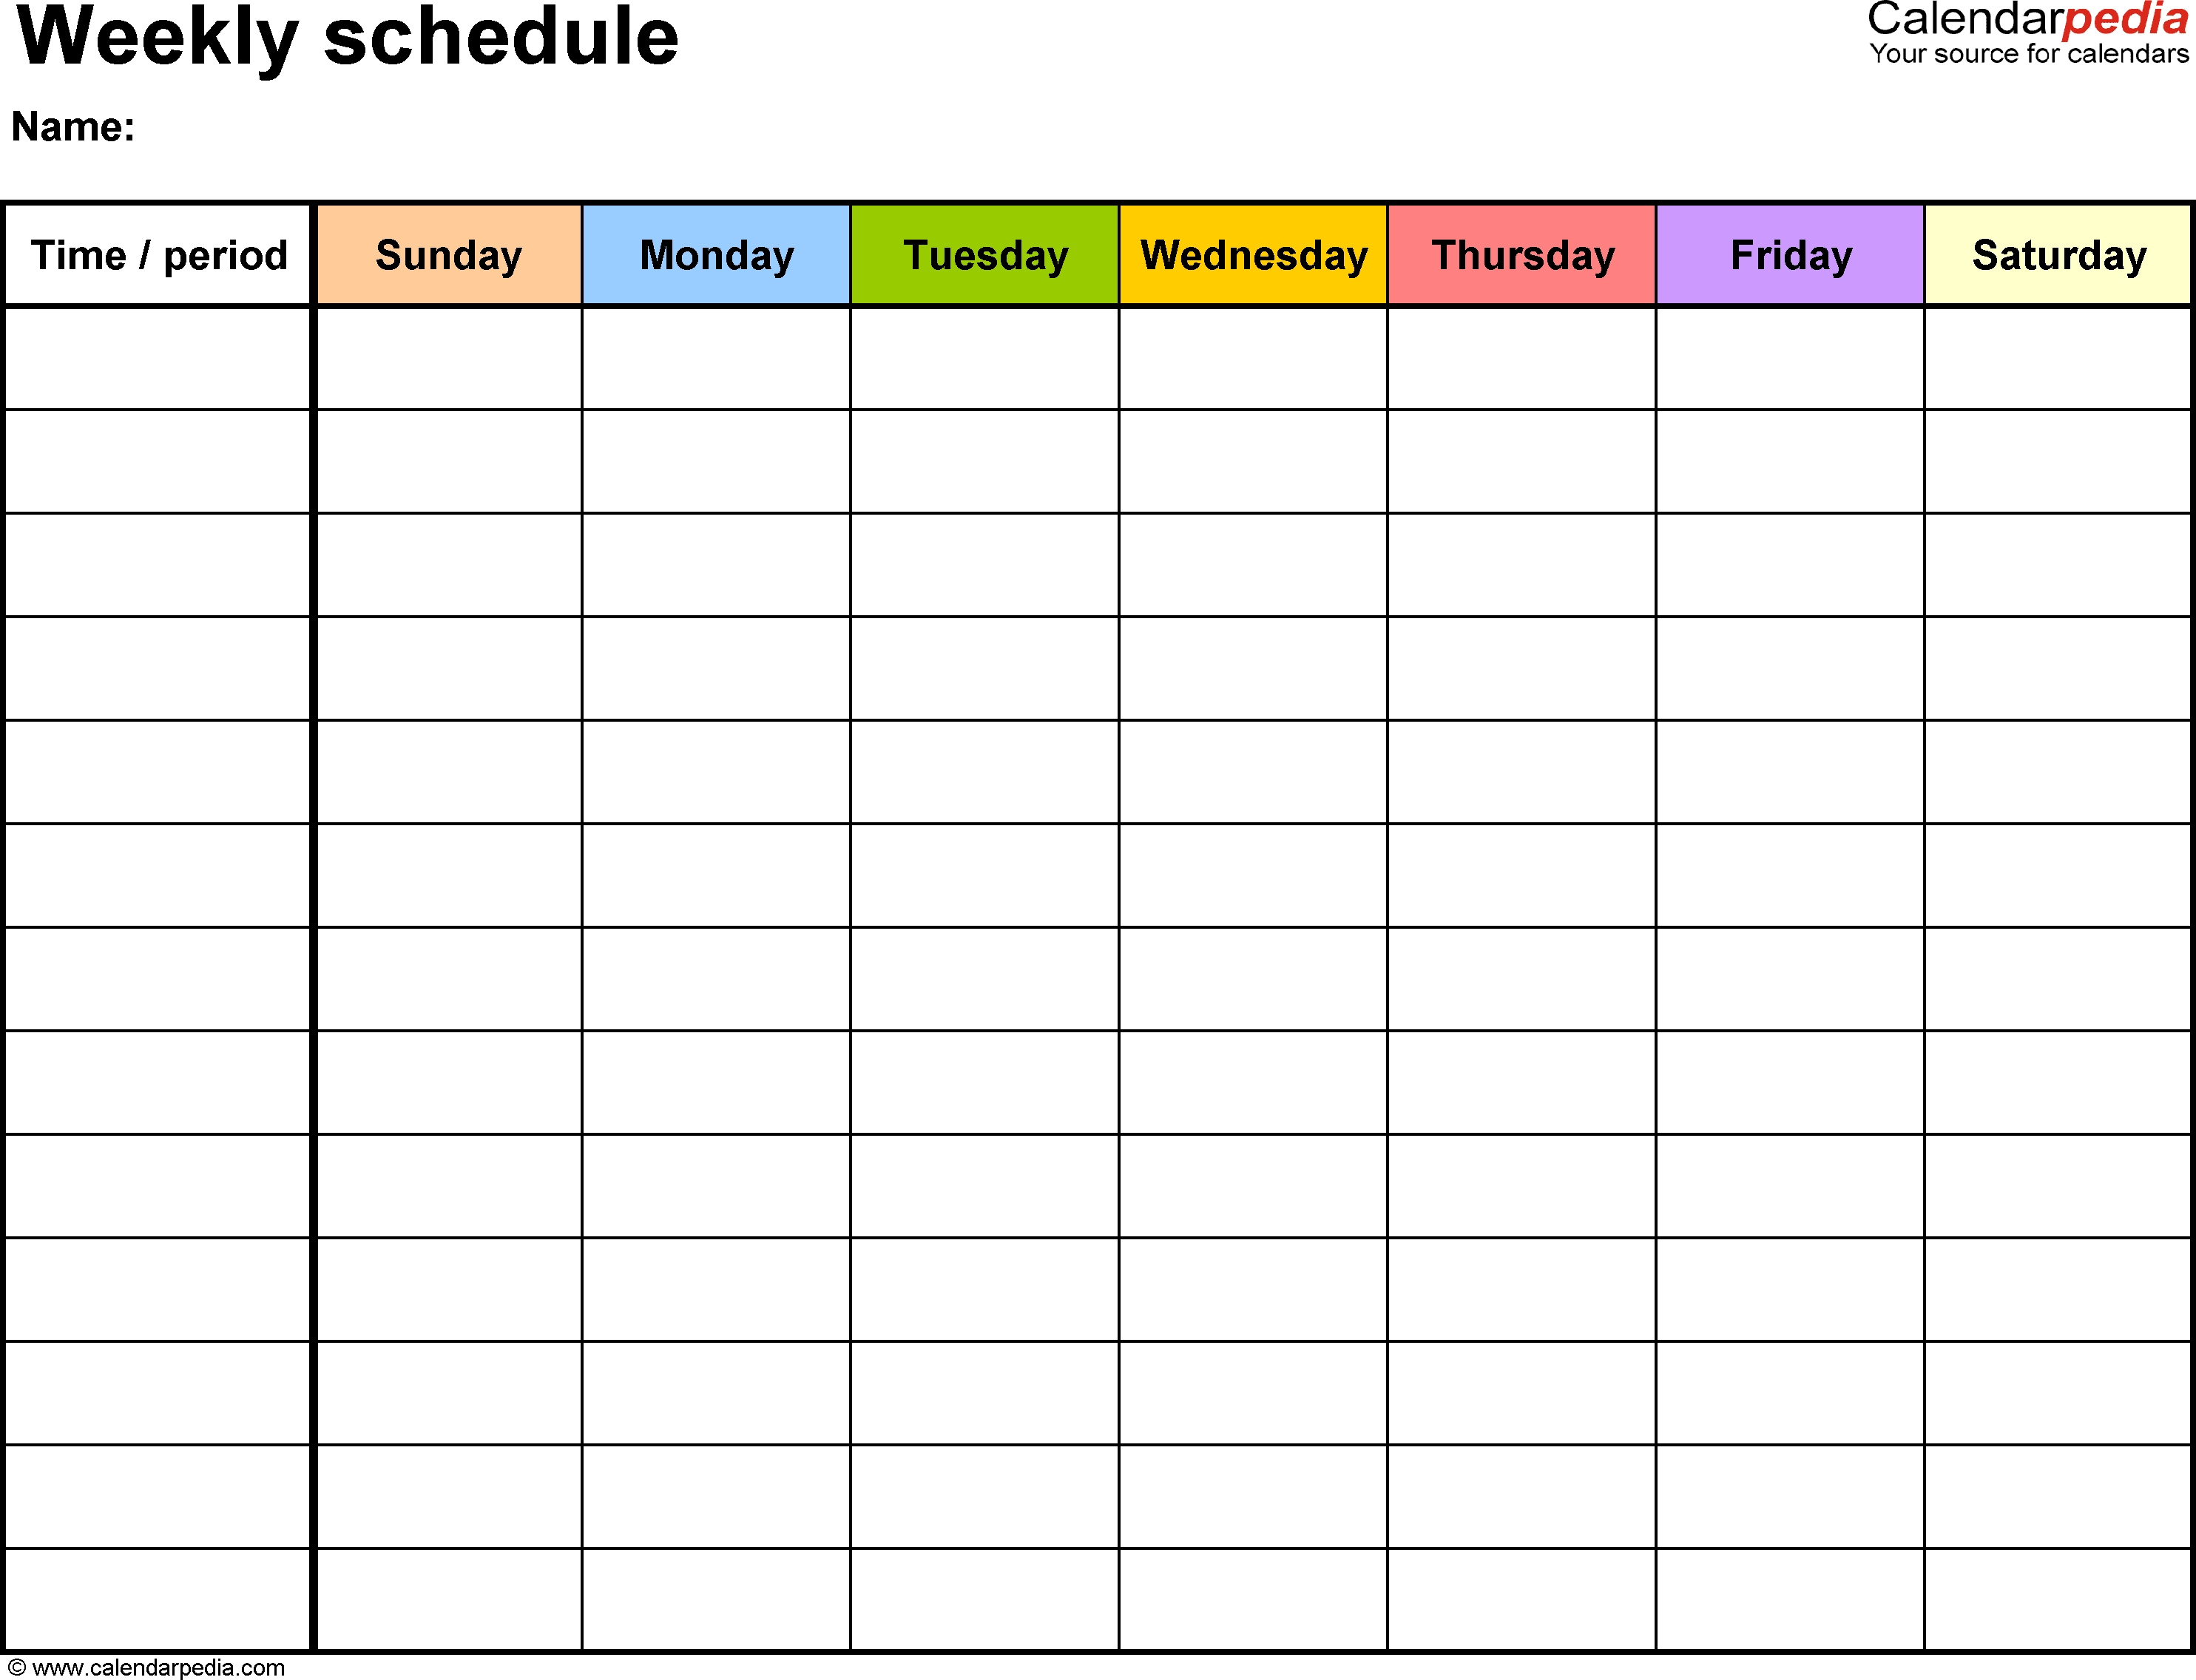 Free Weekly Schedule Templates For Word - 18 Templates with Calendar Day Planner Templates Free